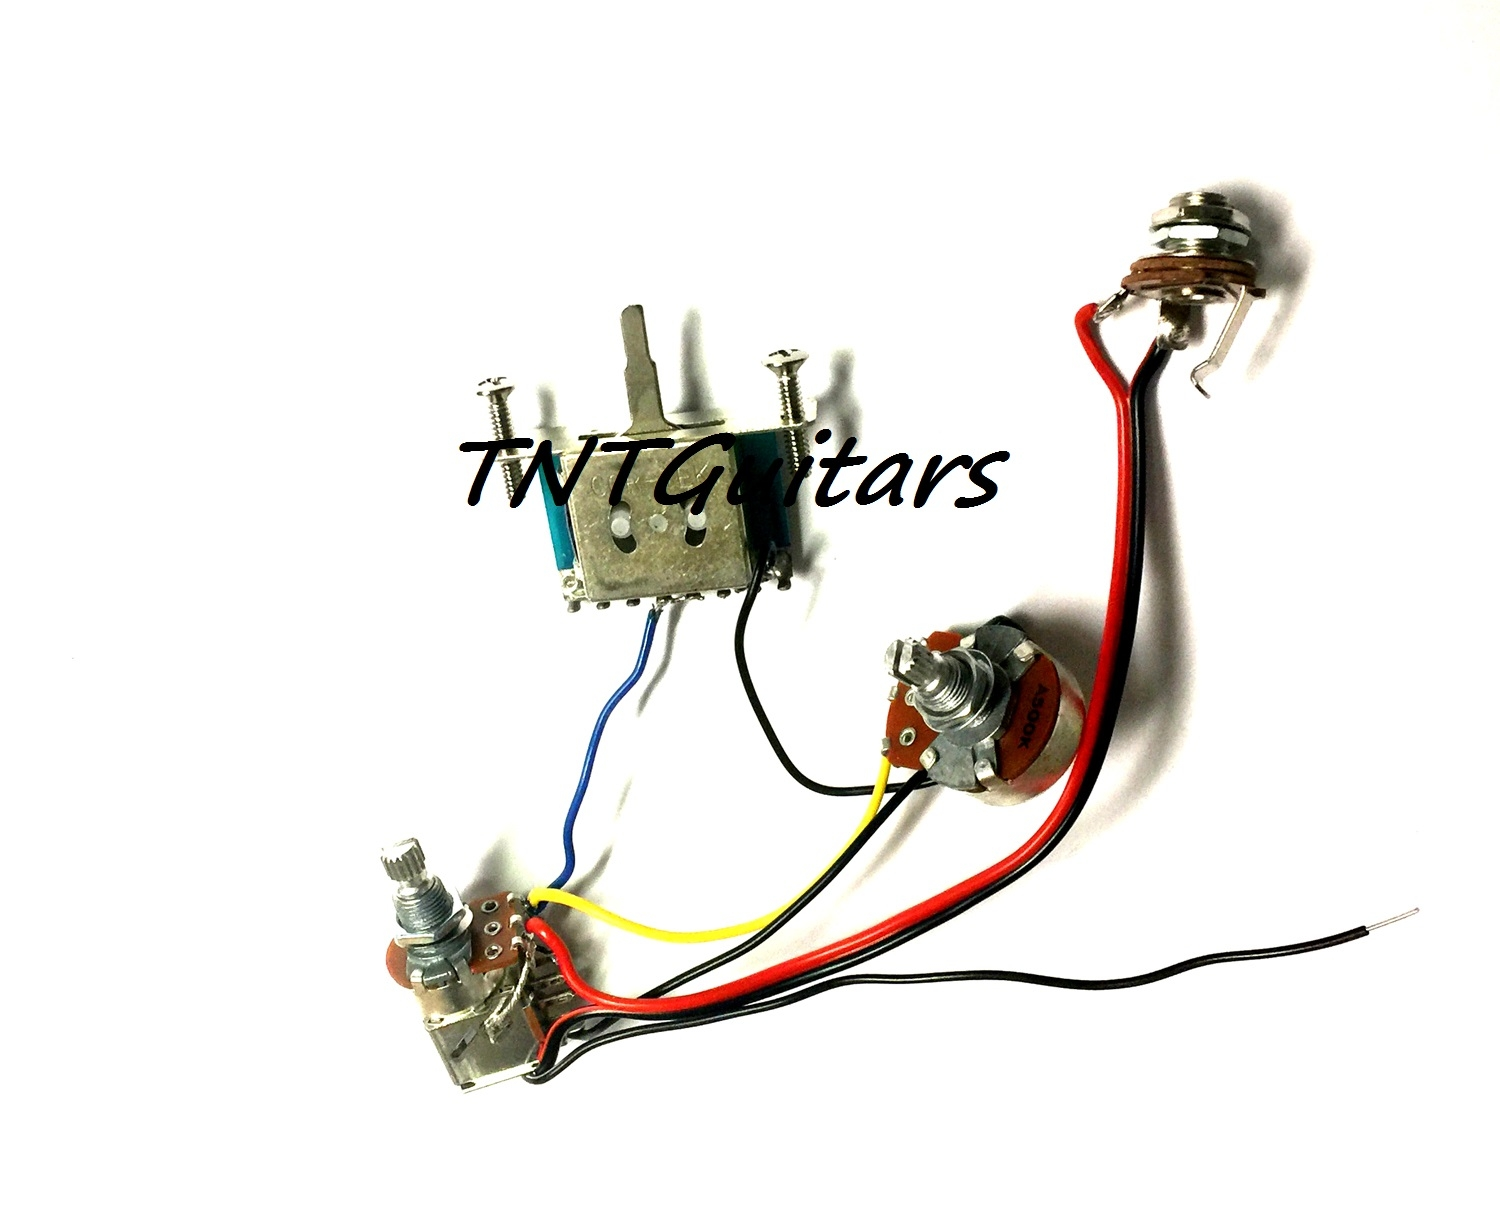 hight resolution of 1v1t prewired harness 2 pickup push pull coil split 3way blade